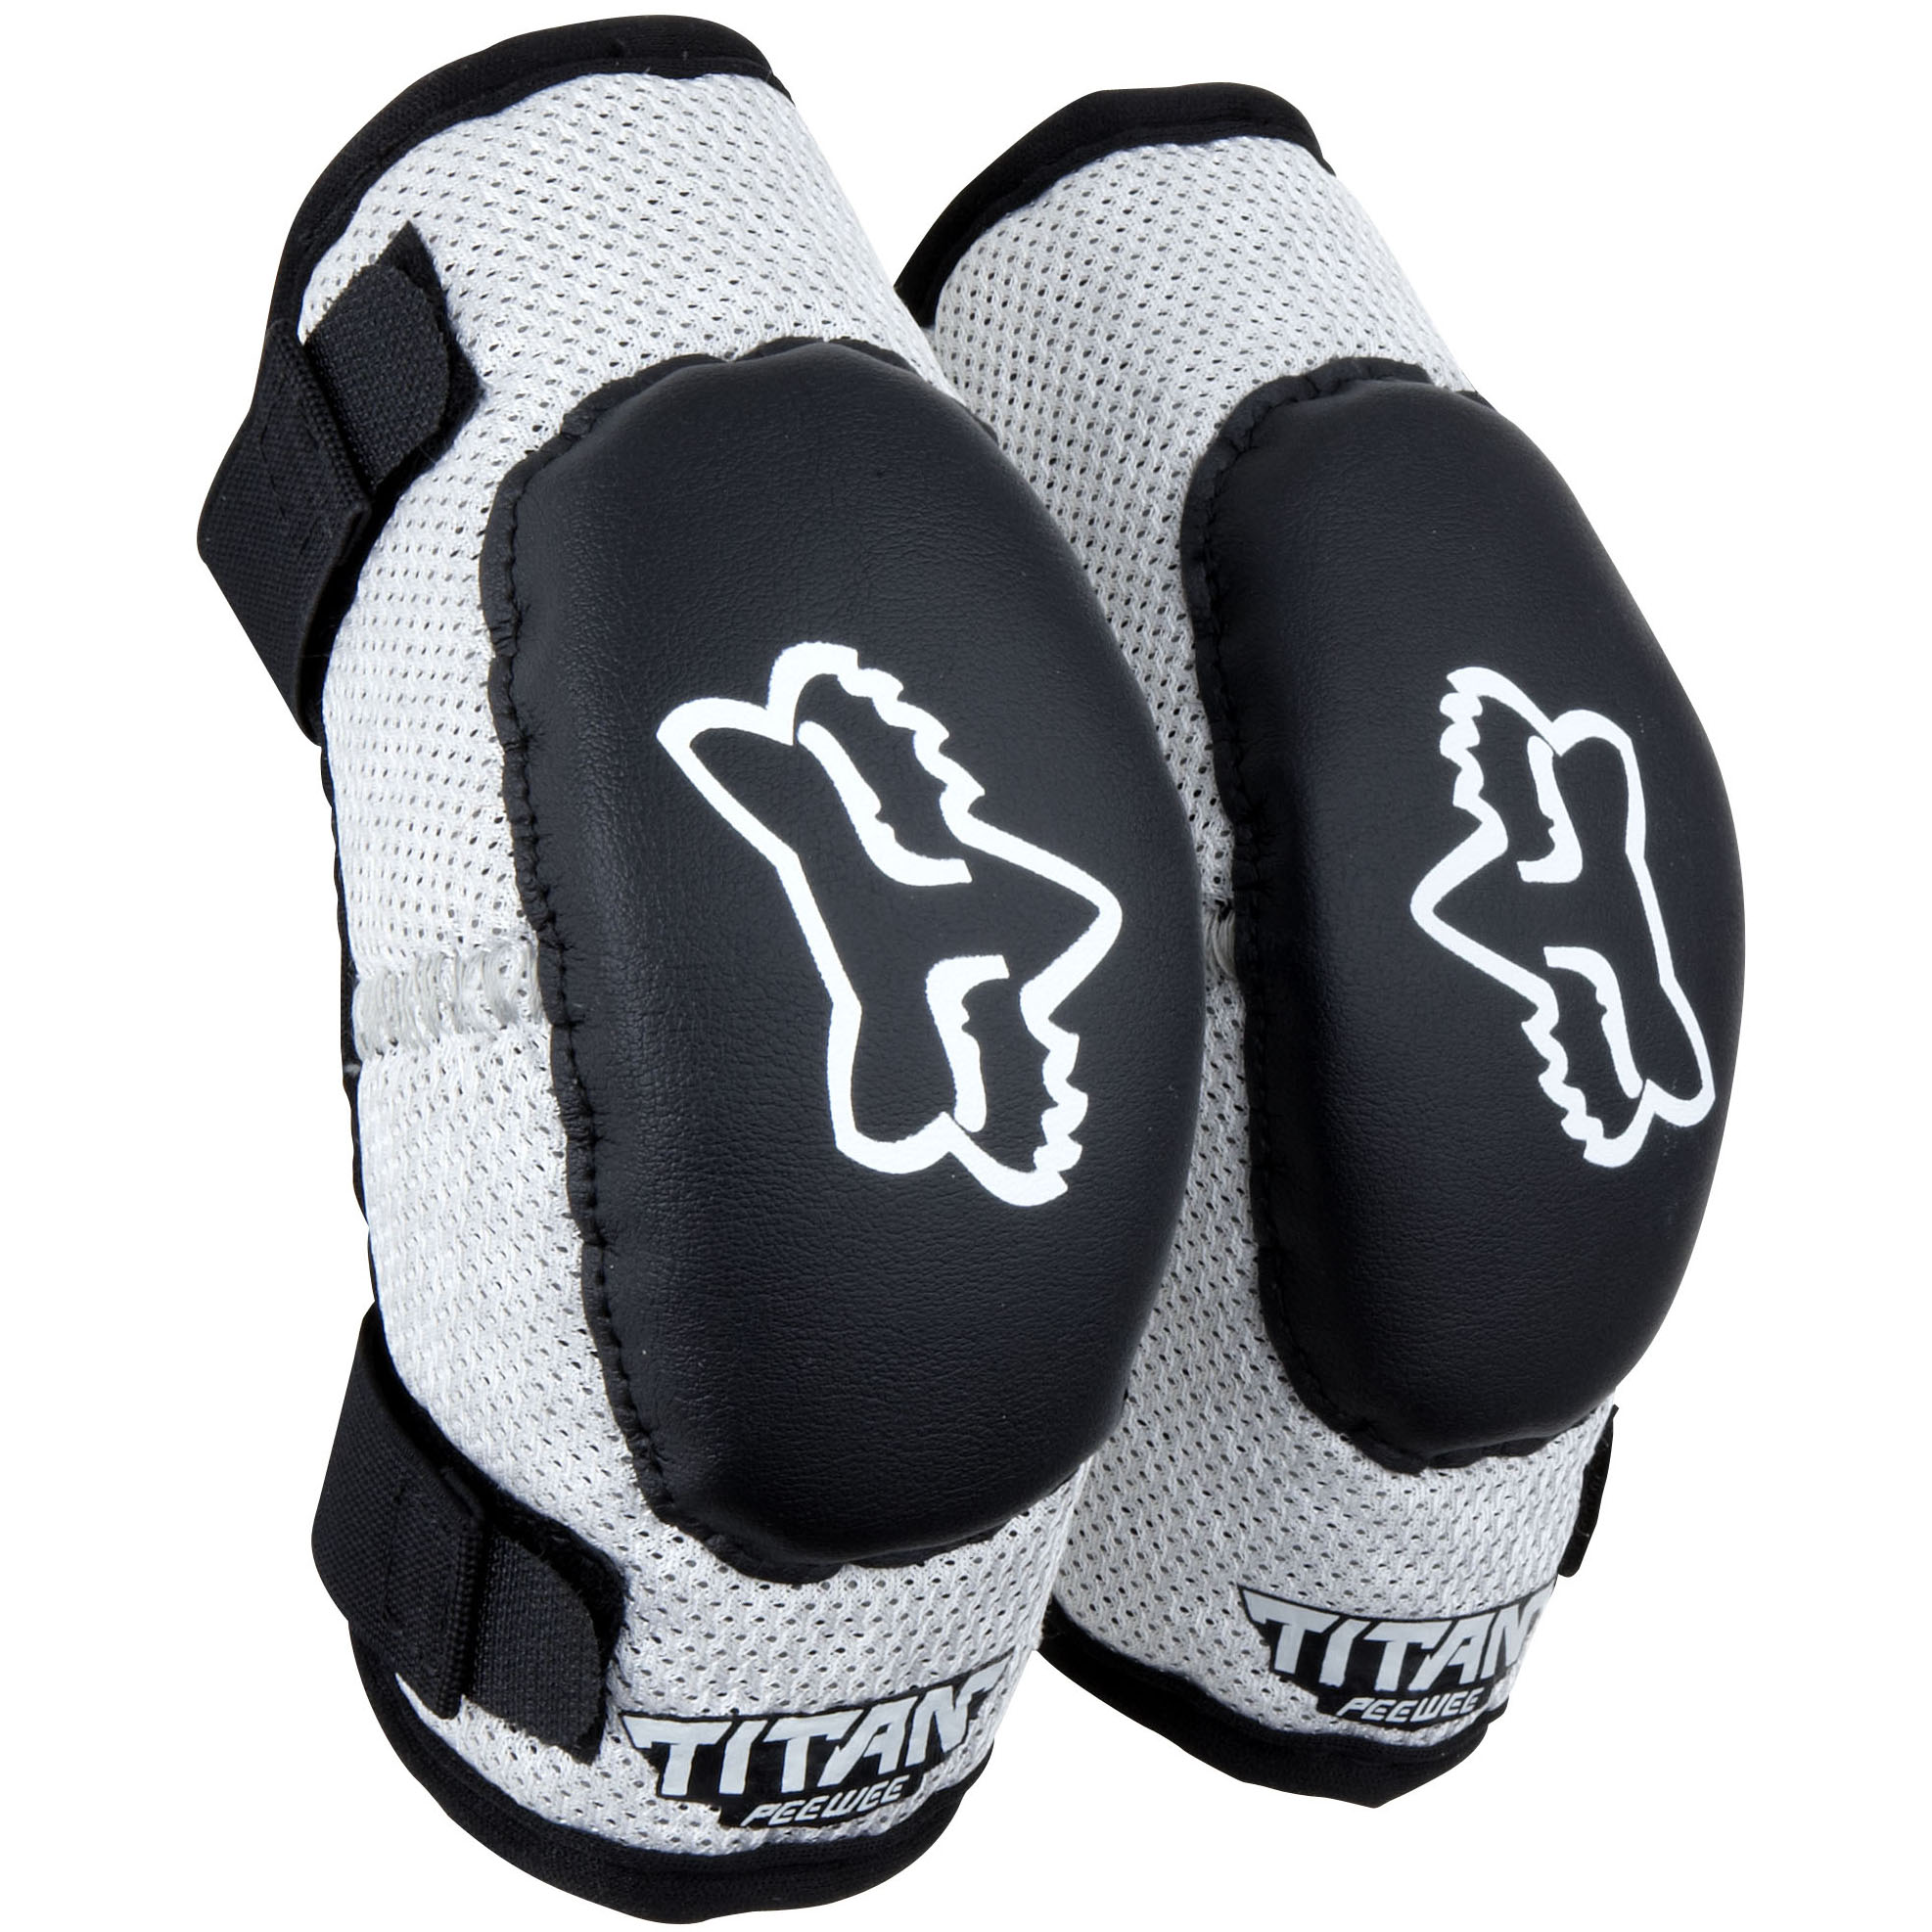 http://www.sixstarracing.com/sites/default/files/Fox-Racing-Pee-Wee-Titan-Elbow-Guards-Black-Silver.jpg